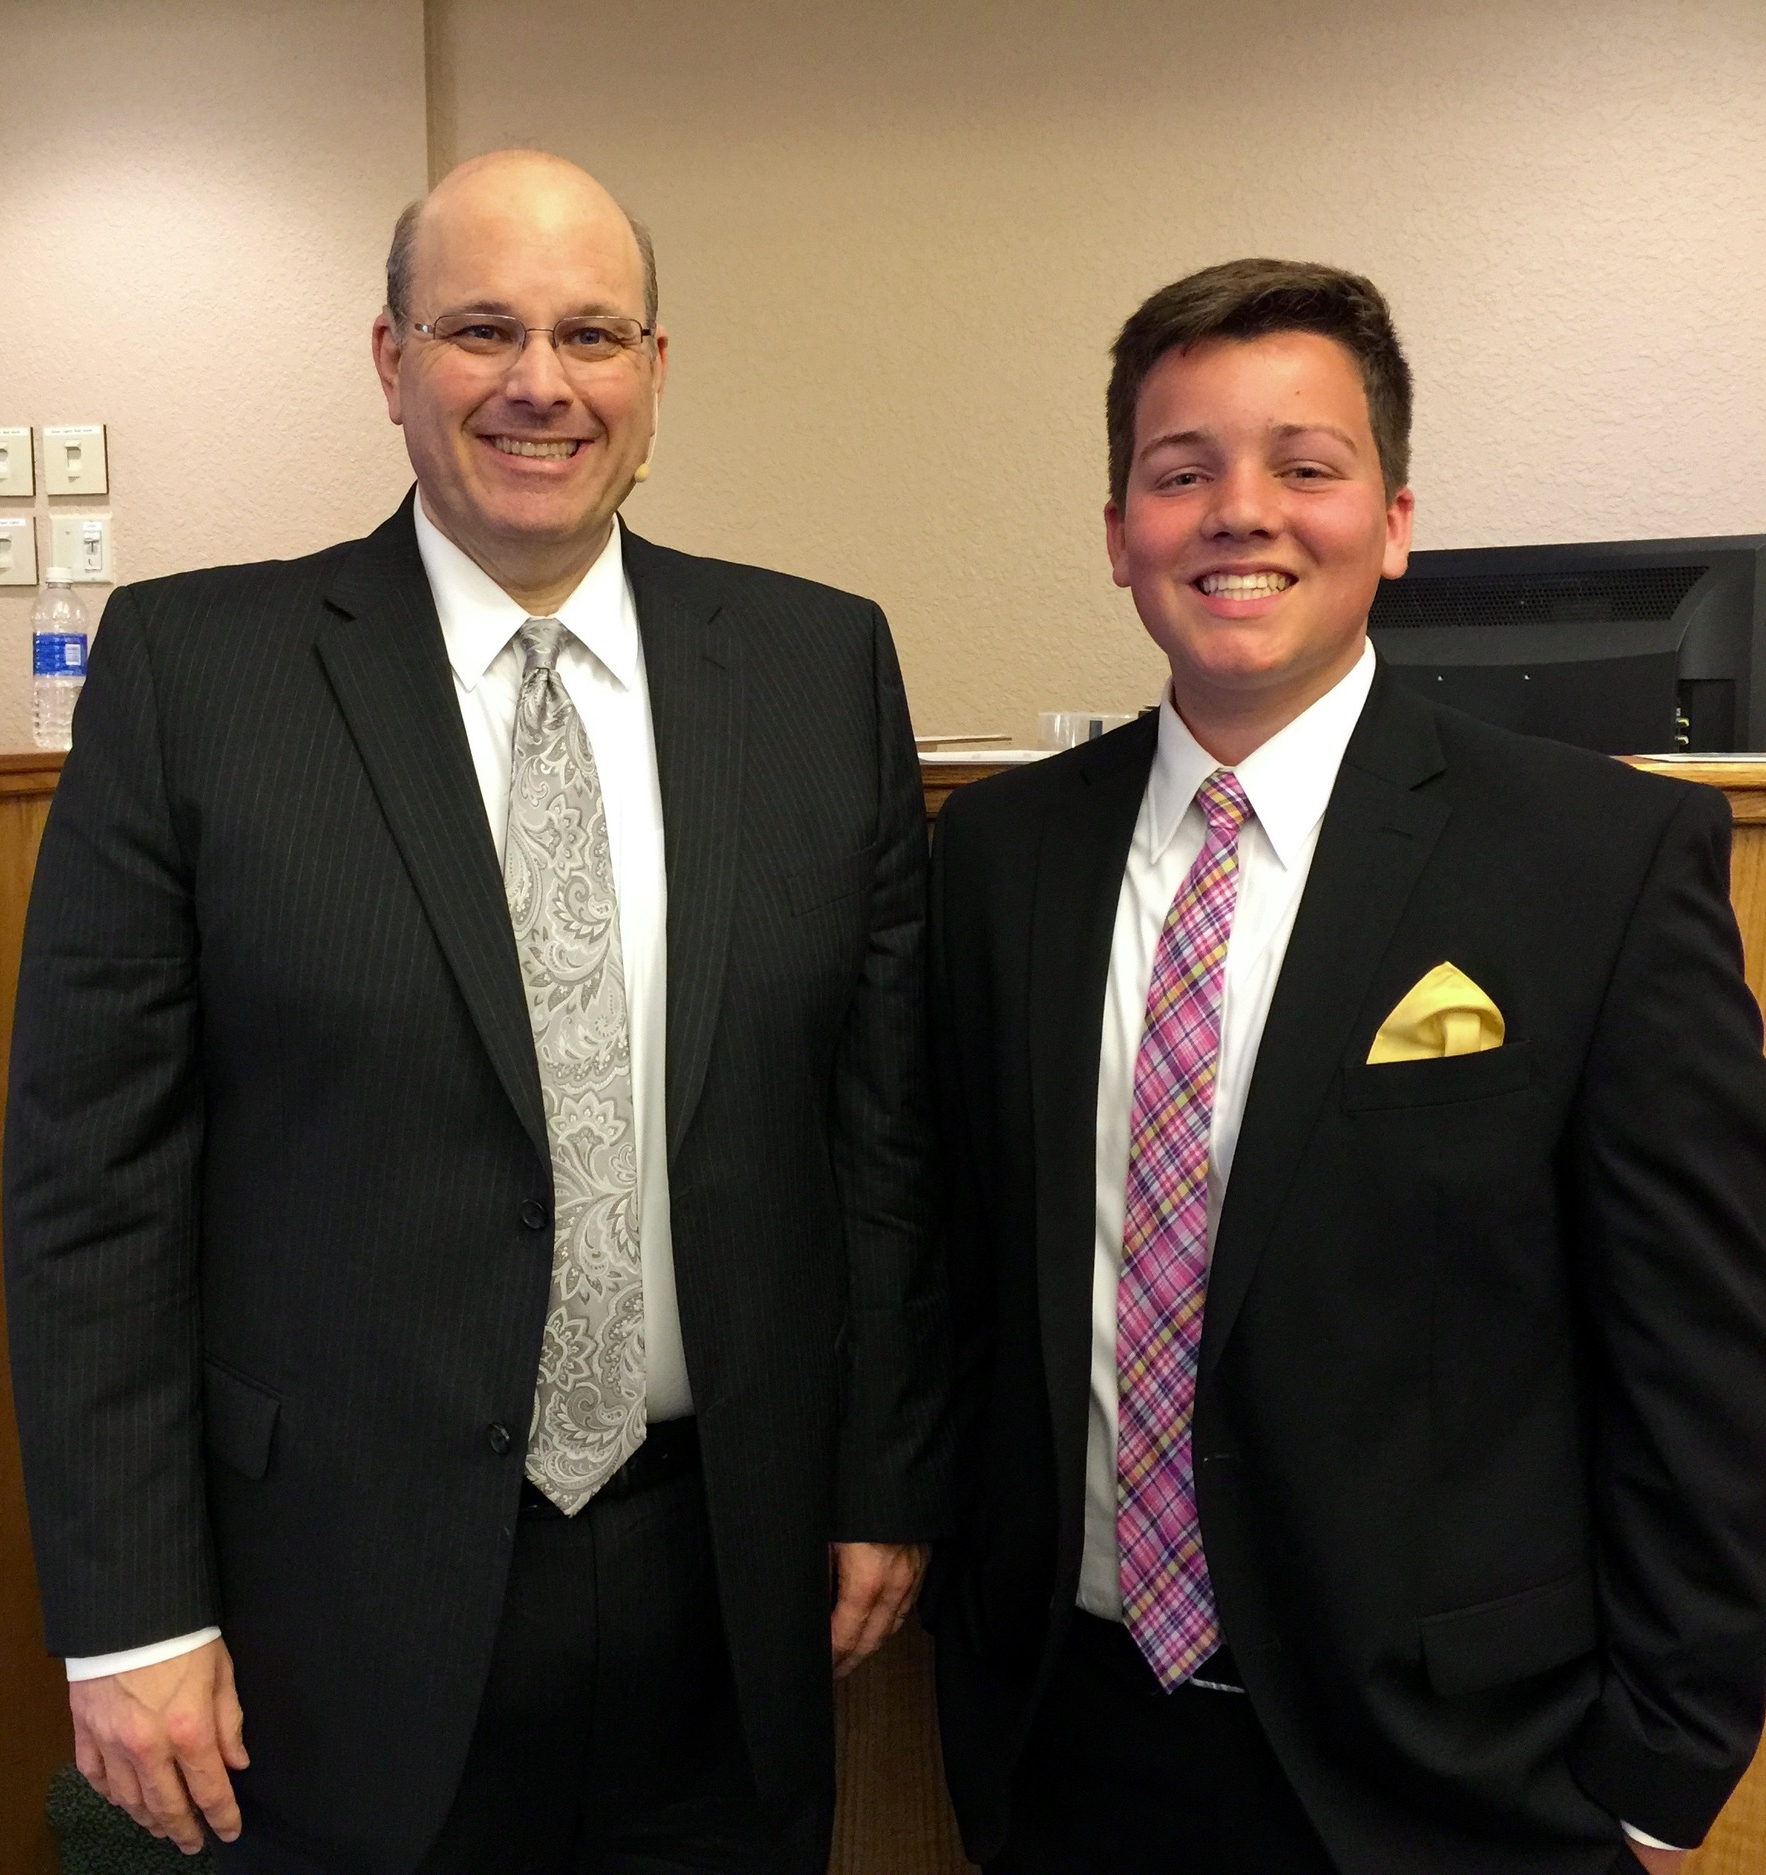 I love Preacher's kids. This Caleb Wiley. He is the Son of Pastor Jason and Angie Wiley of Palm Harbor, FL.